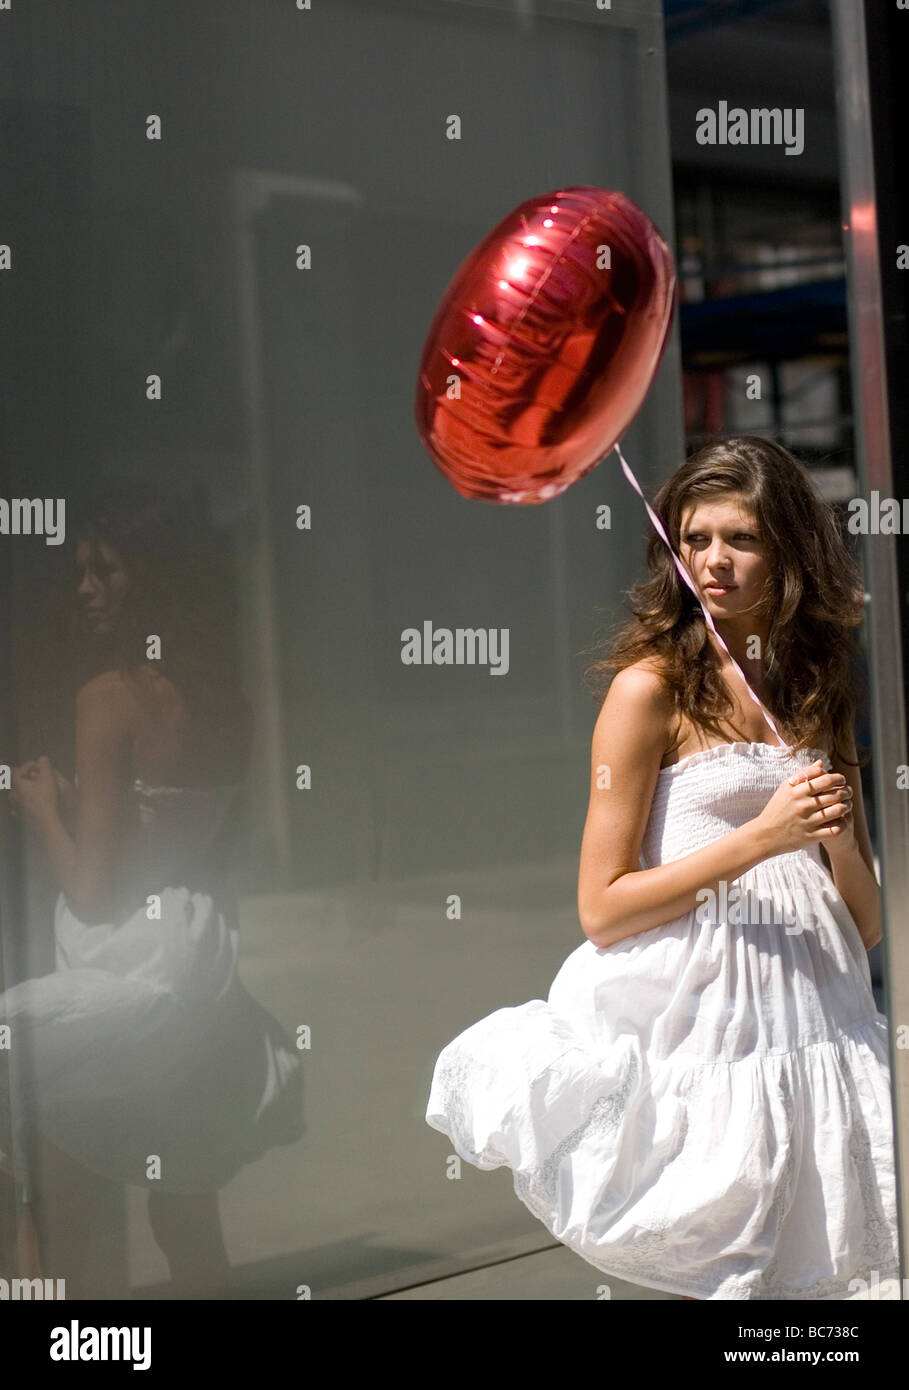 Woman with red balloon in city center - Stock Image